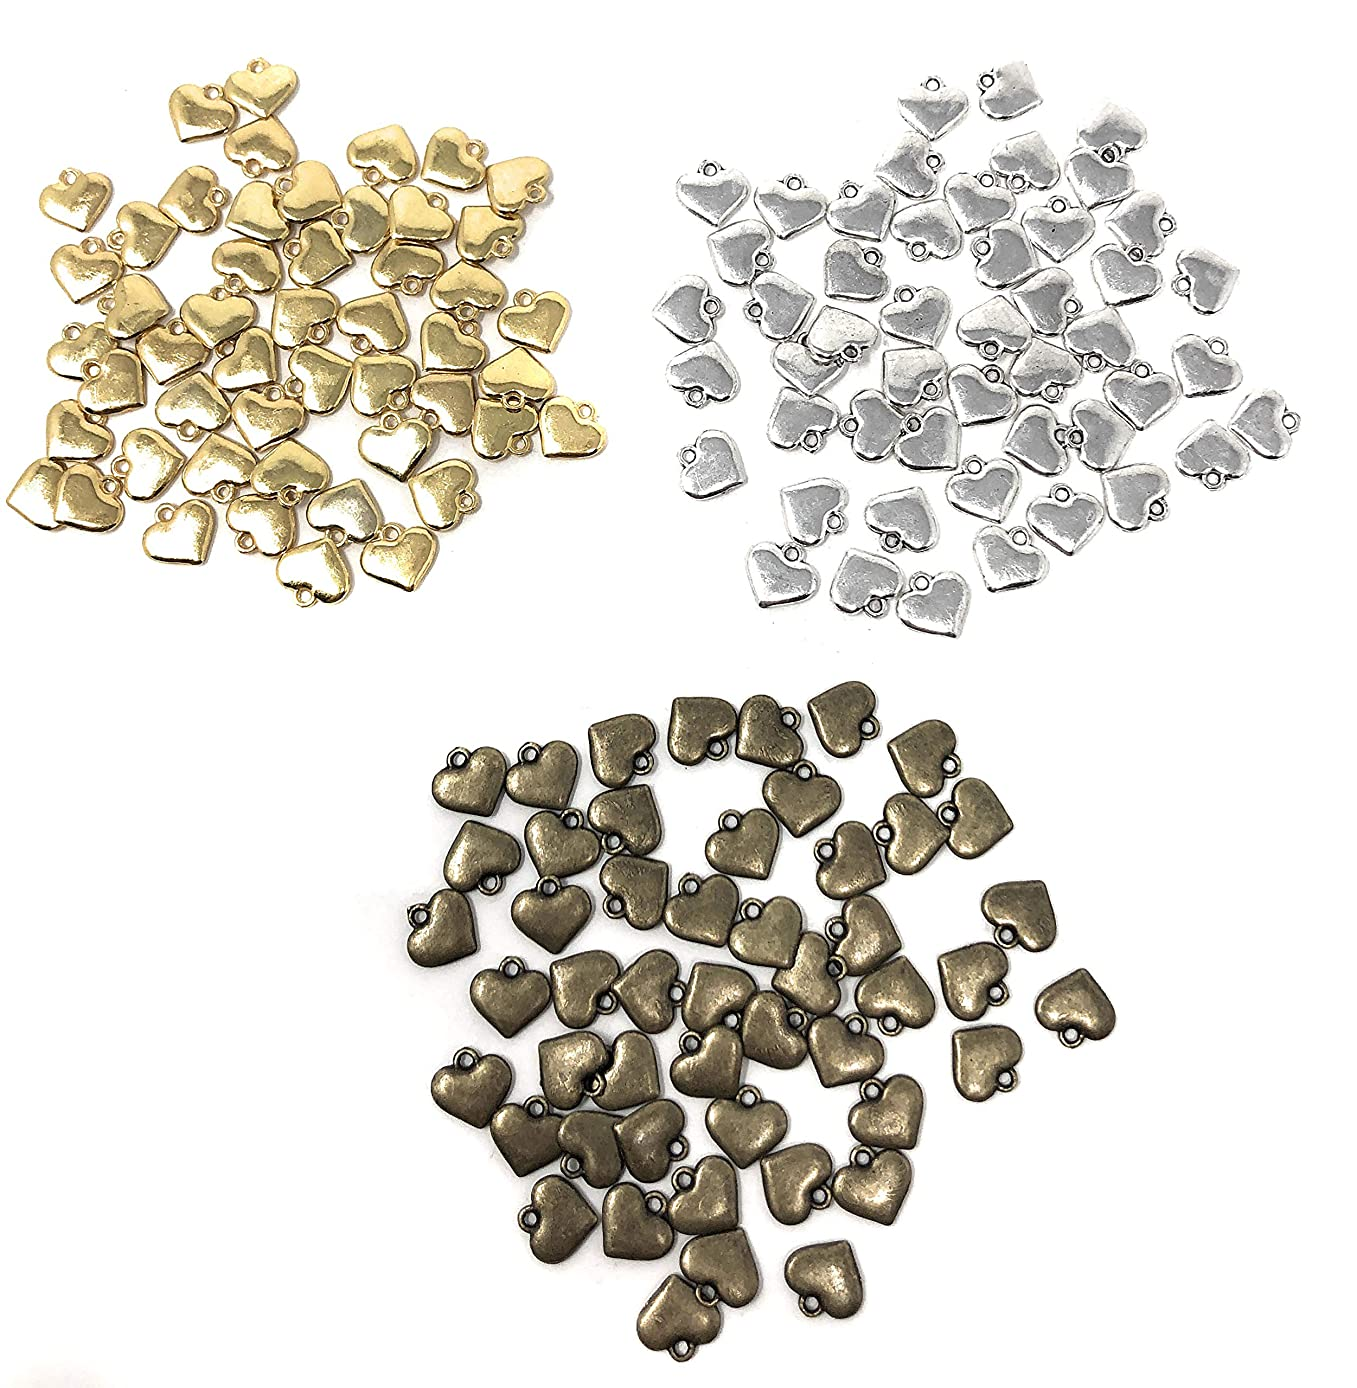 Rusoji 150pcs Assorted Color Alloy Mini Heart Charms Pendants for DIY Craft, Necklace, Bracelet, Earrings, Choker, Jewelry Accessories, 50pcs Per Color